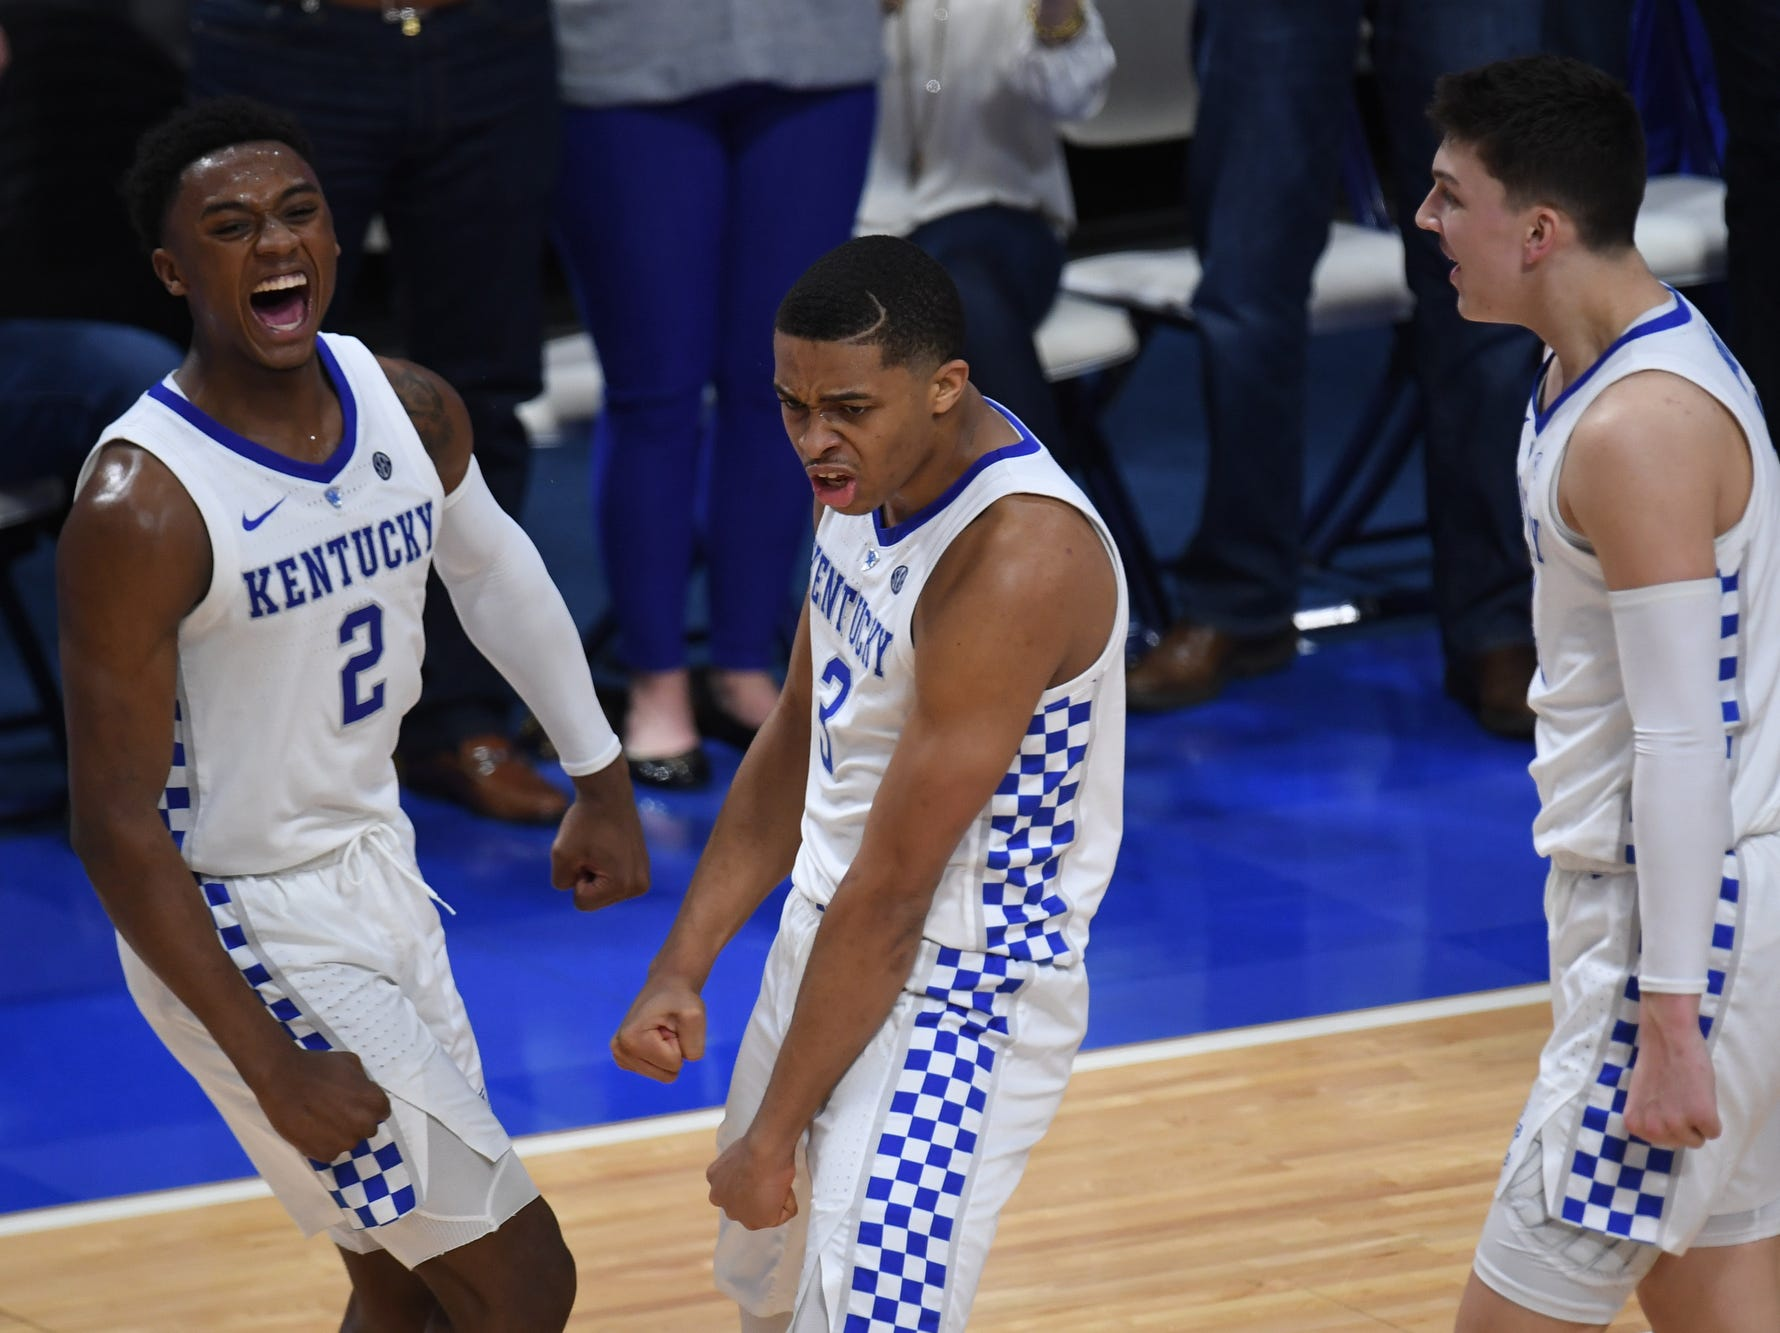 UK players celebrate during the University of Kentucky mens basketball game against Tennessee at Rupp Arena in Lexington, Kentucky on Saturday, February 16, 2019.